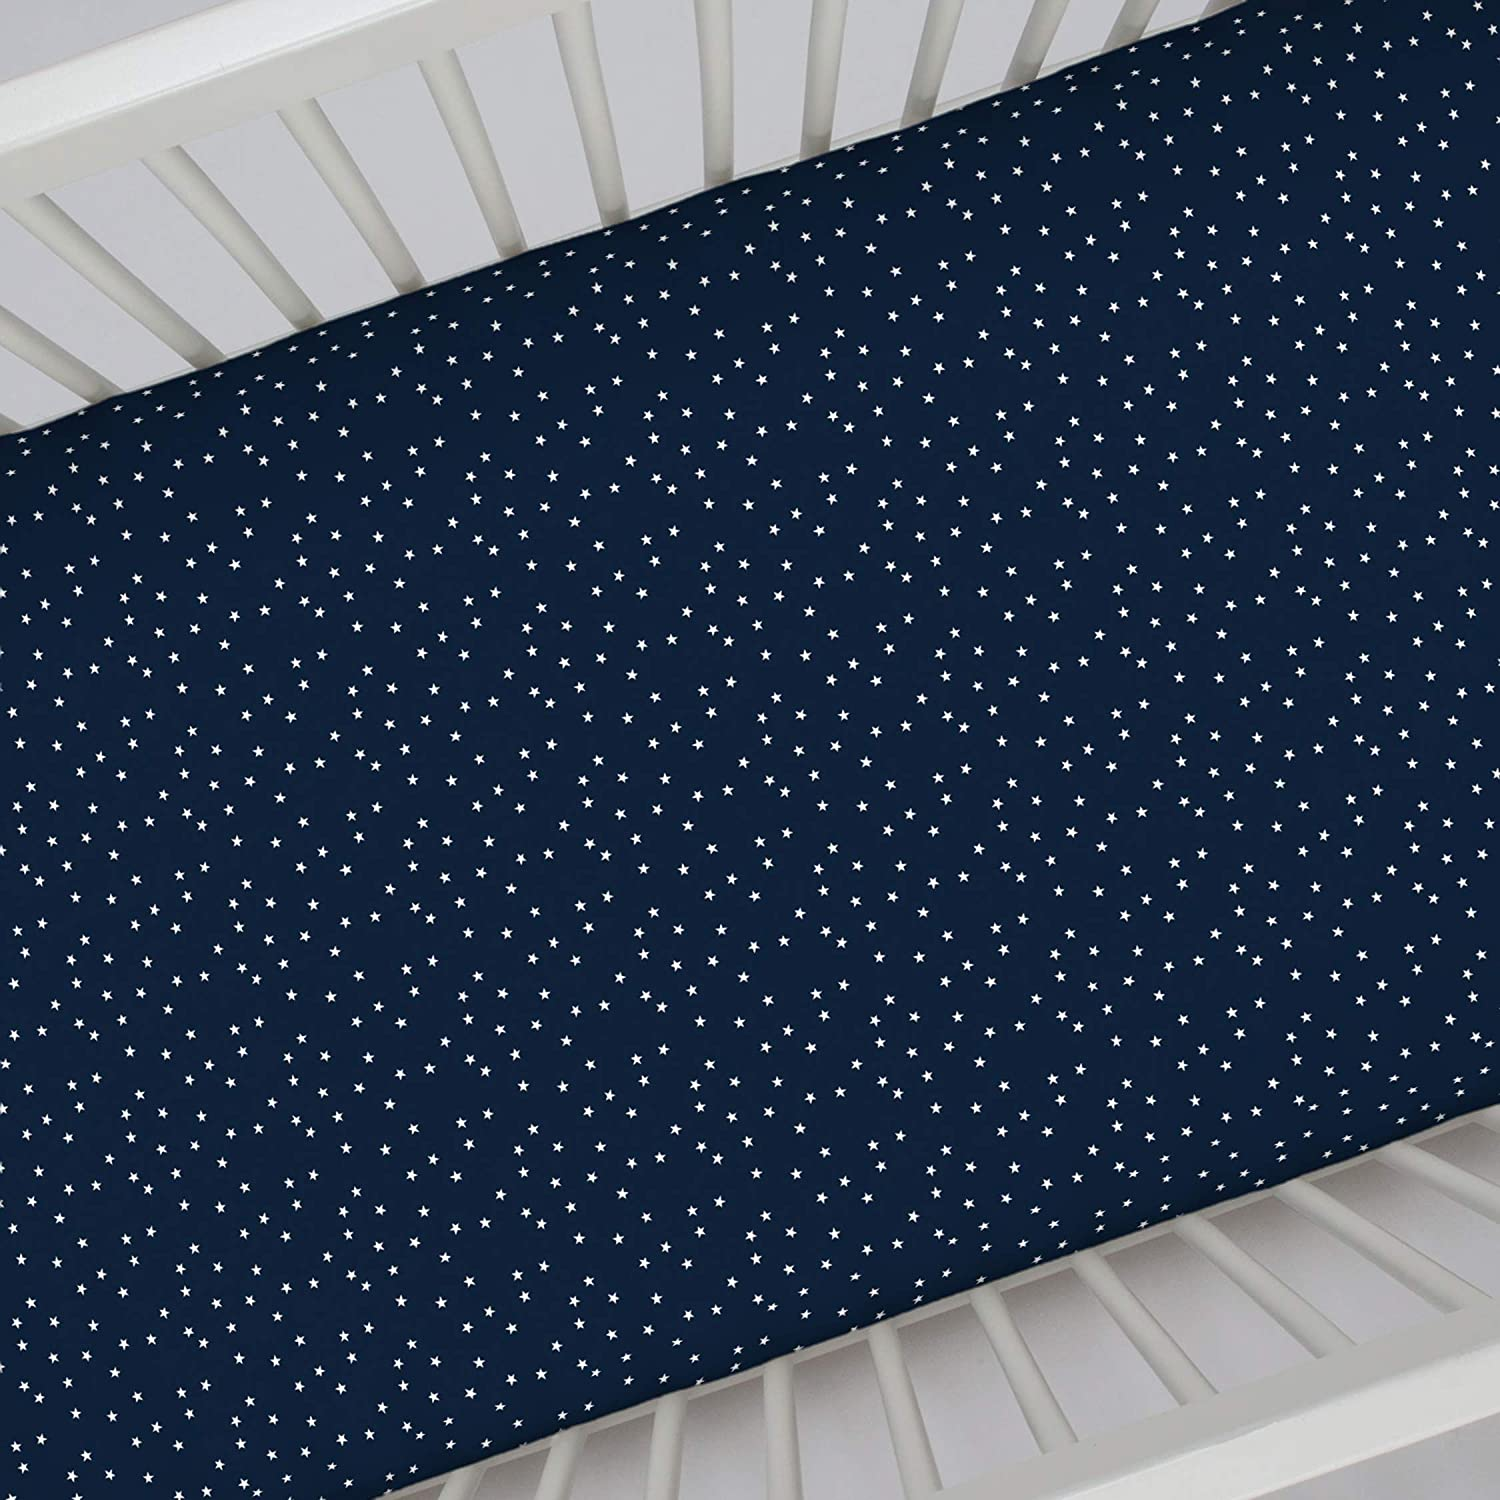 Carter's 100% Cotton Sateen Fitted Crib Sheet, Stars, Navy, White